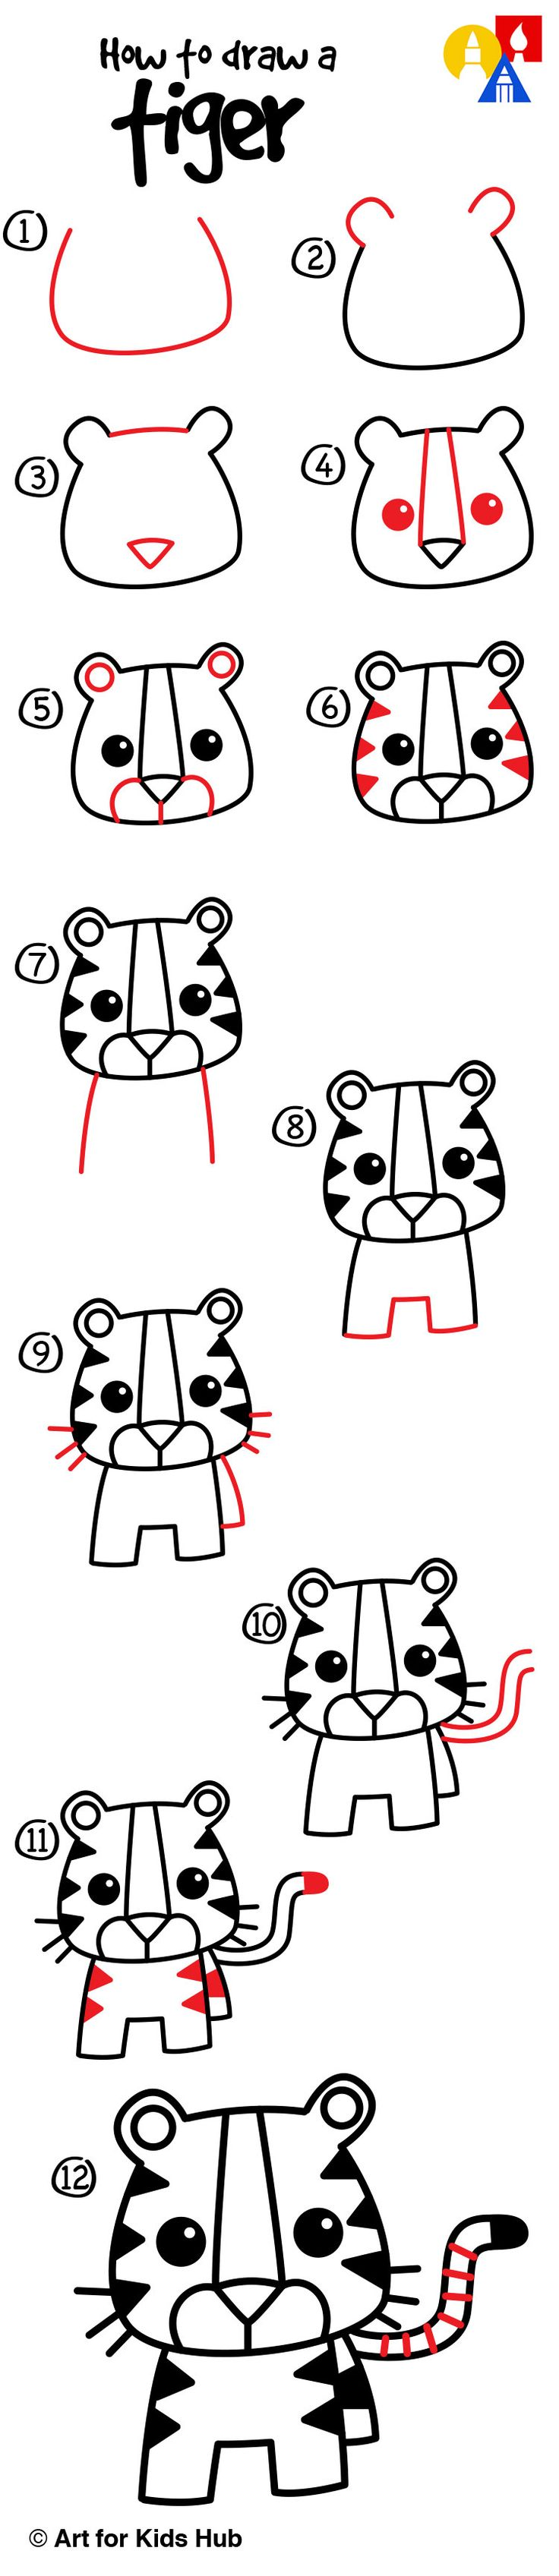 how to draw a cartoon tiger art for kids hub - Simple Cartoon Pics